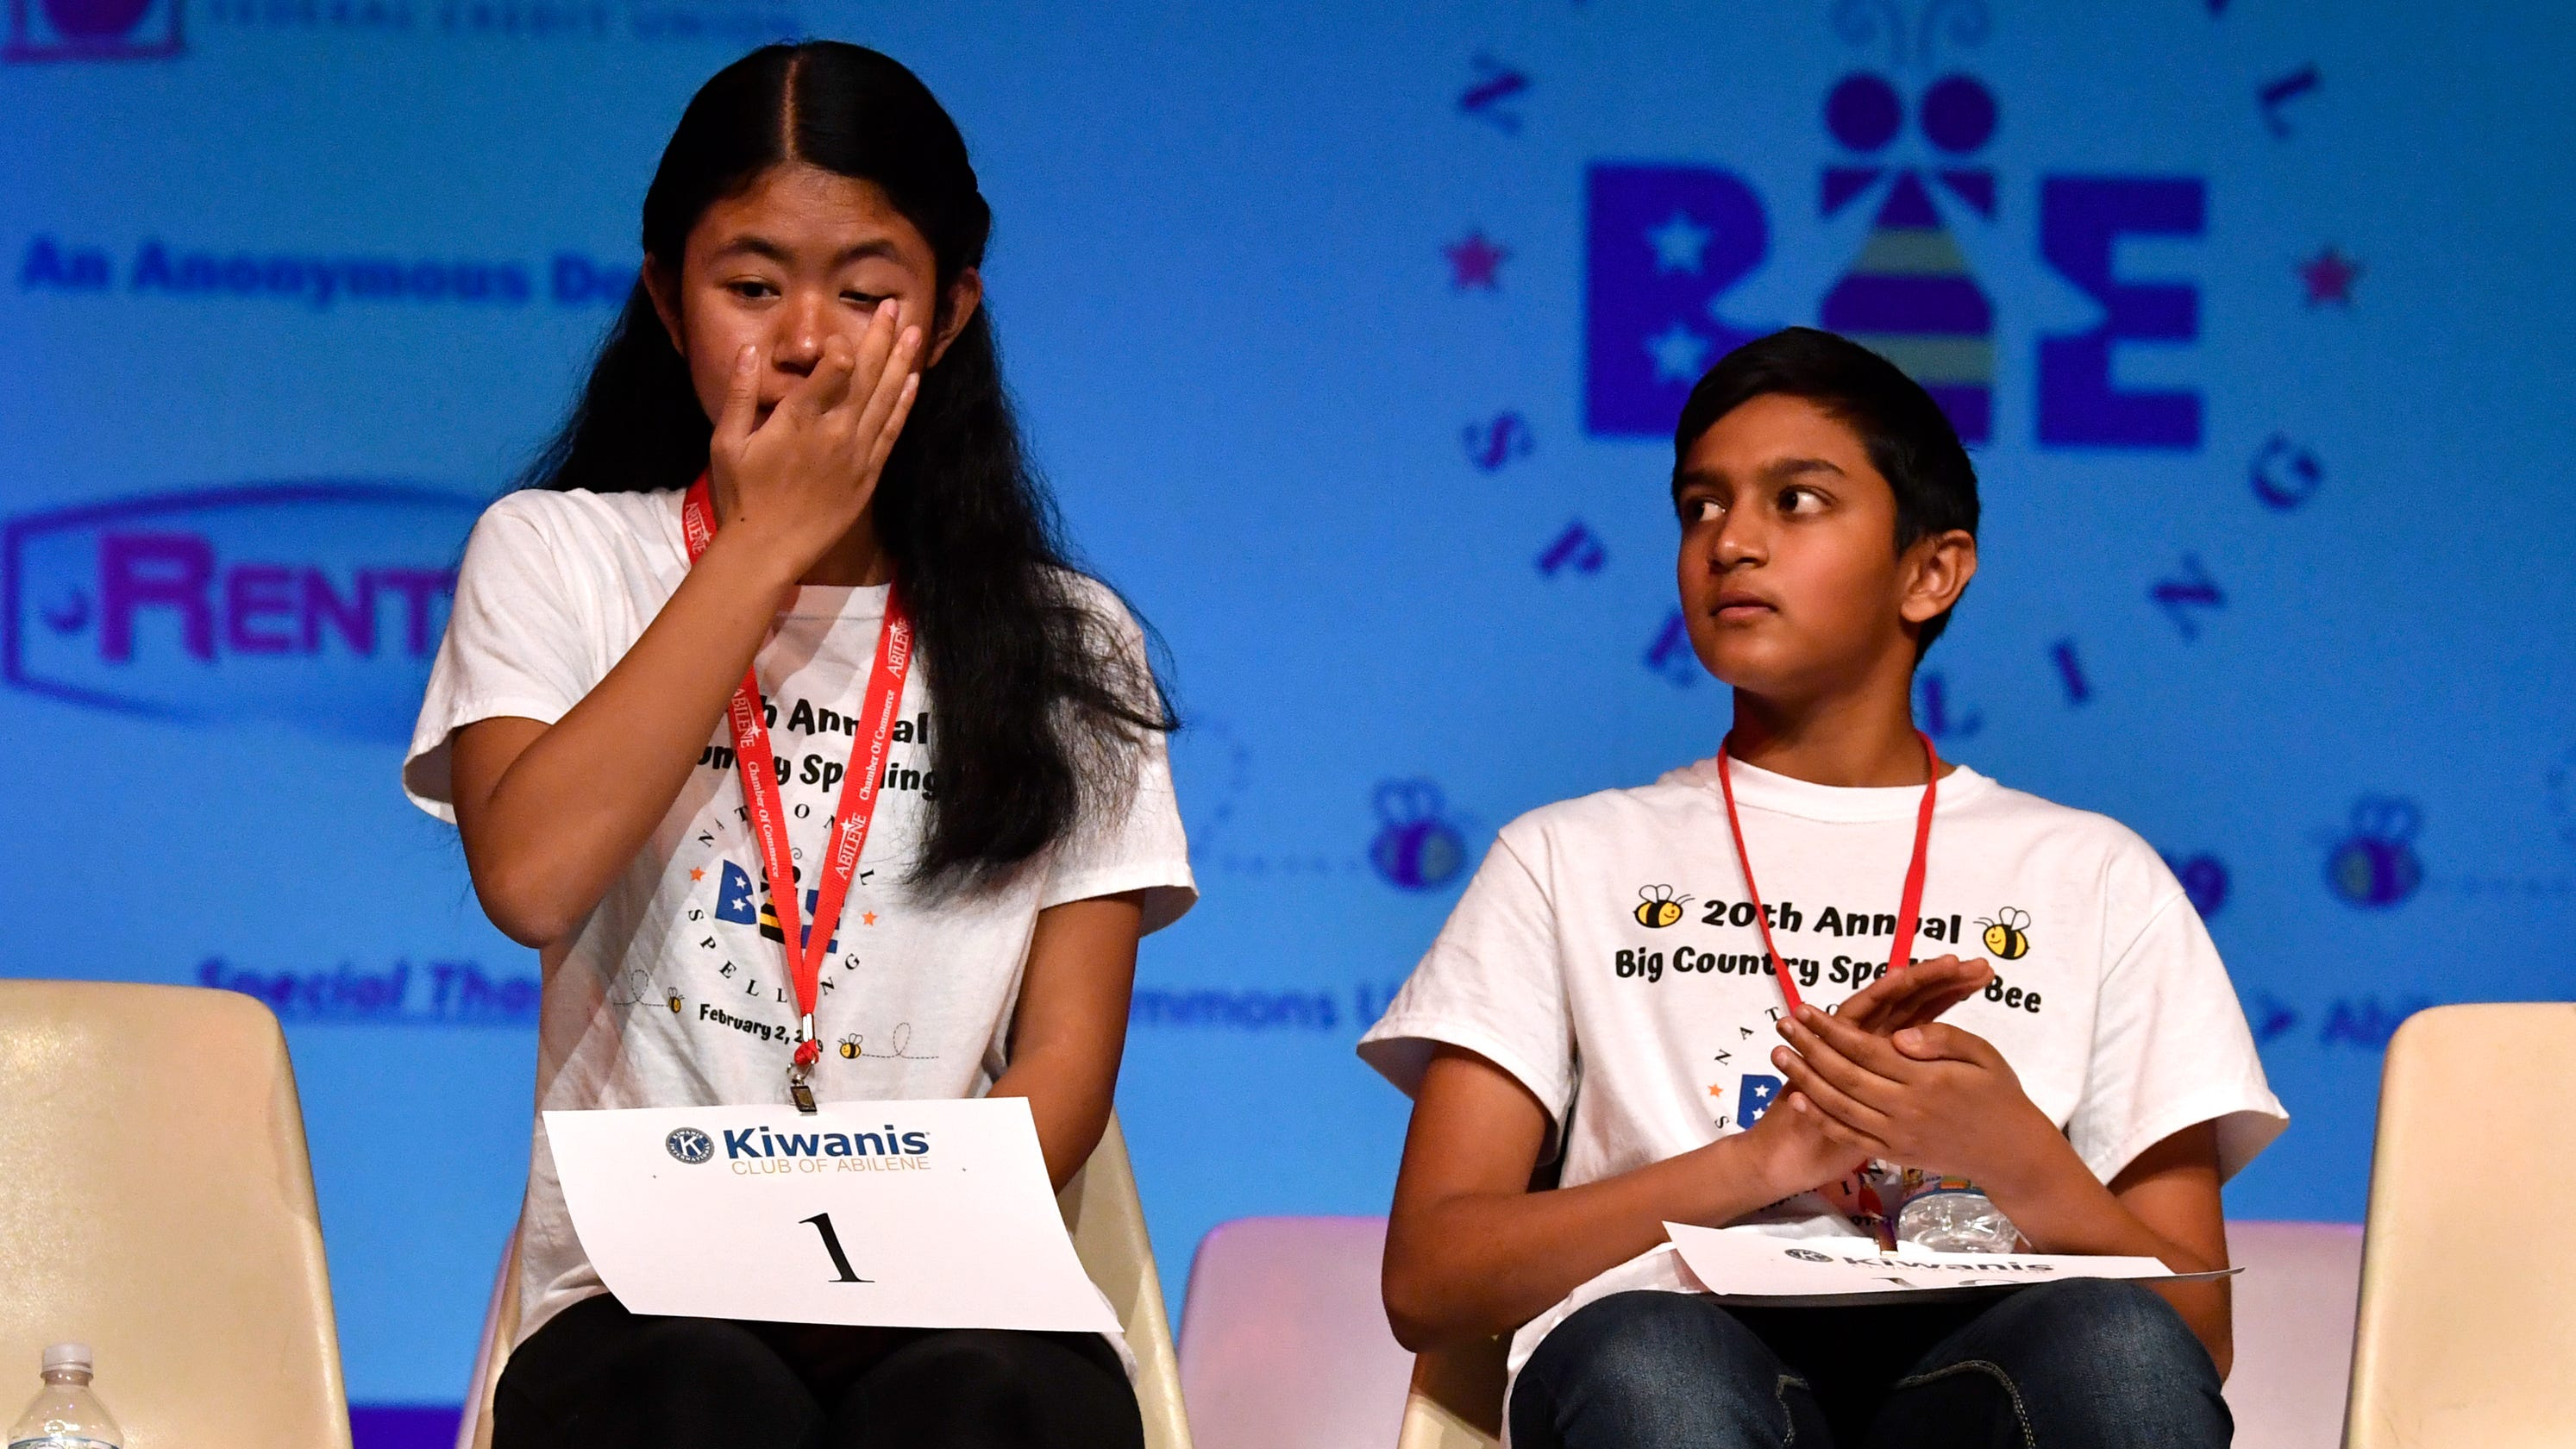 Big Country Spelling Bee buzzes Abilene Saturday with national bee berth on the line